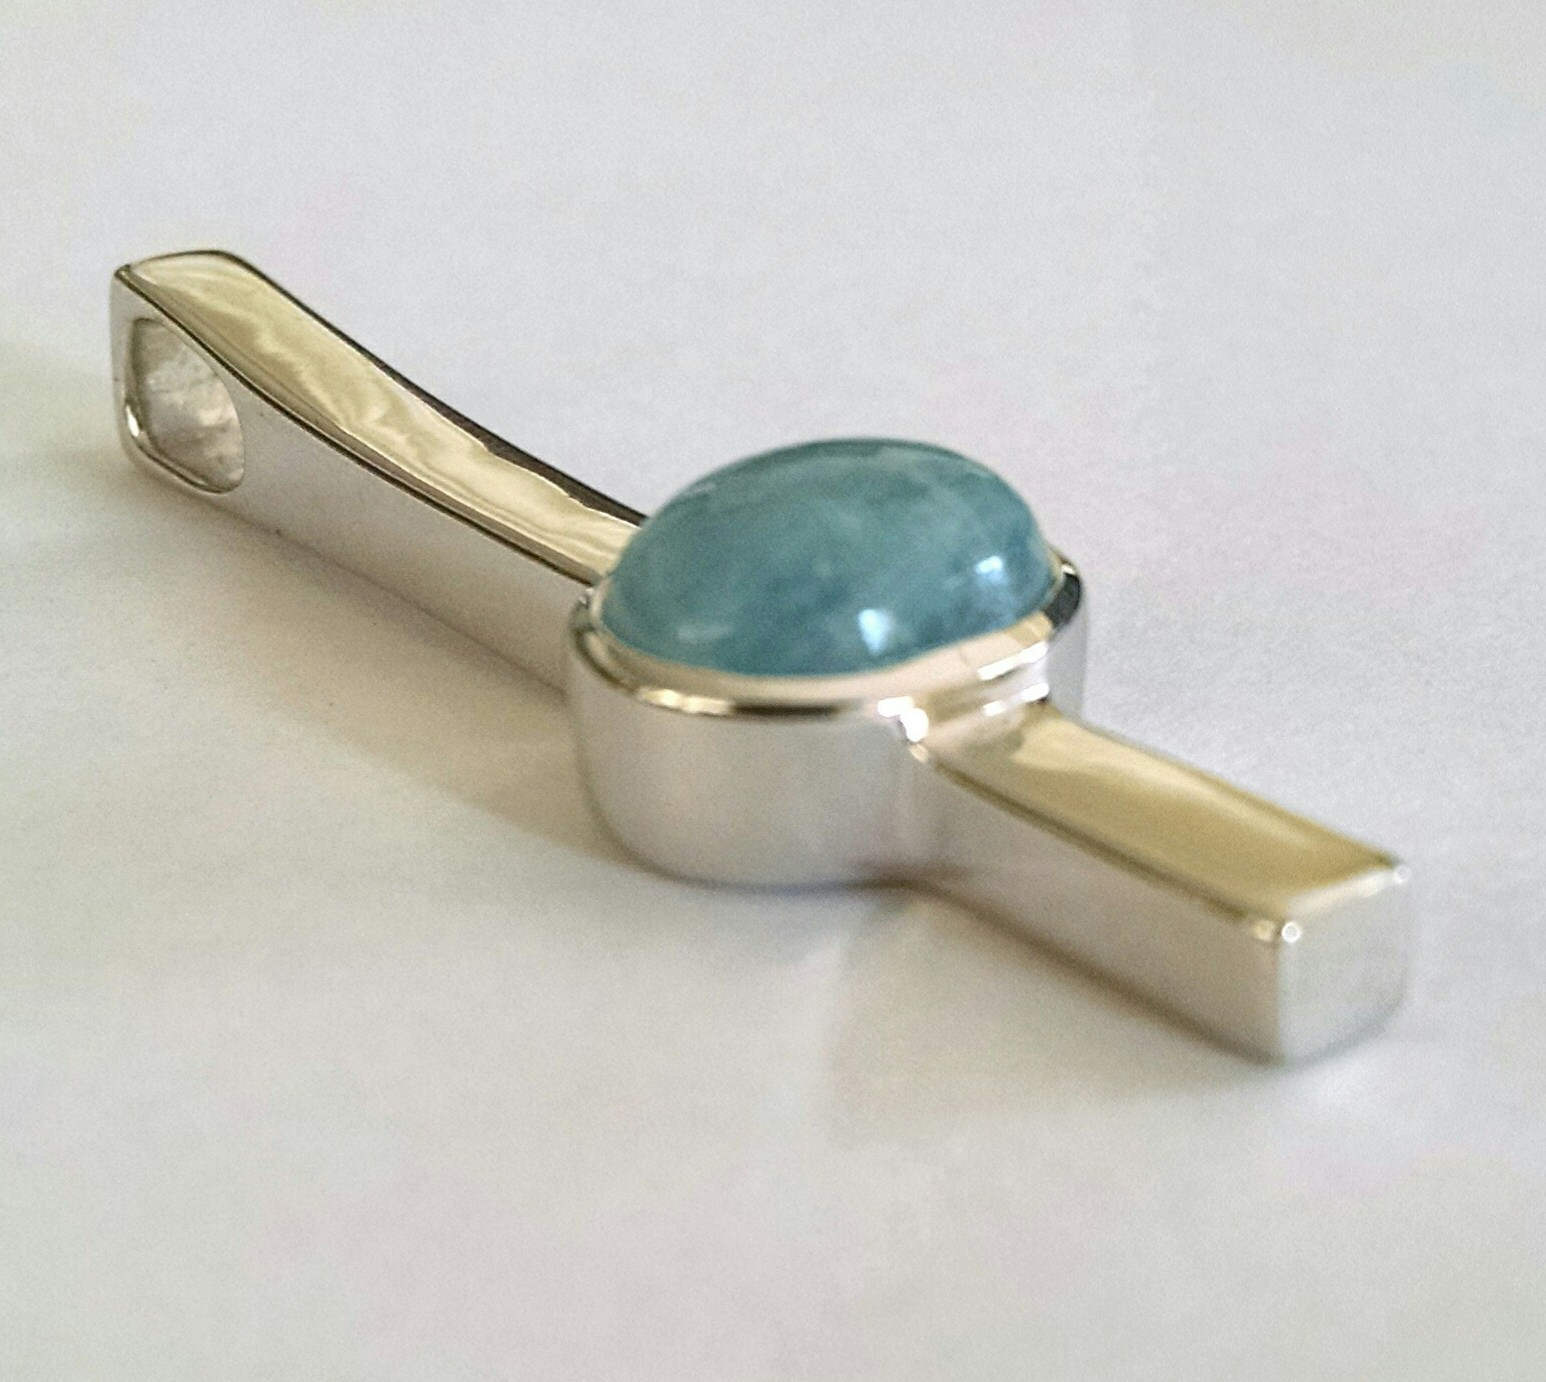 Contemporary milky aquamarine pendant